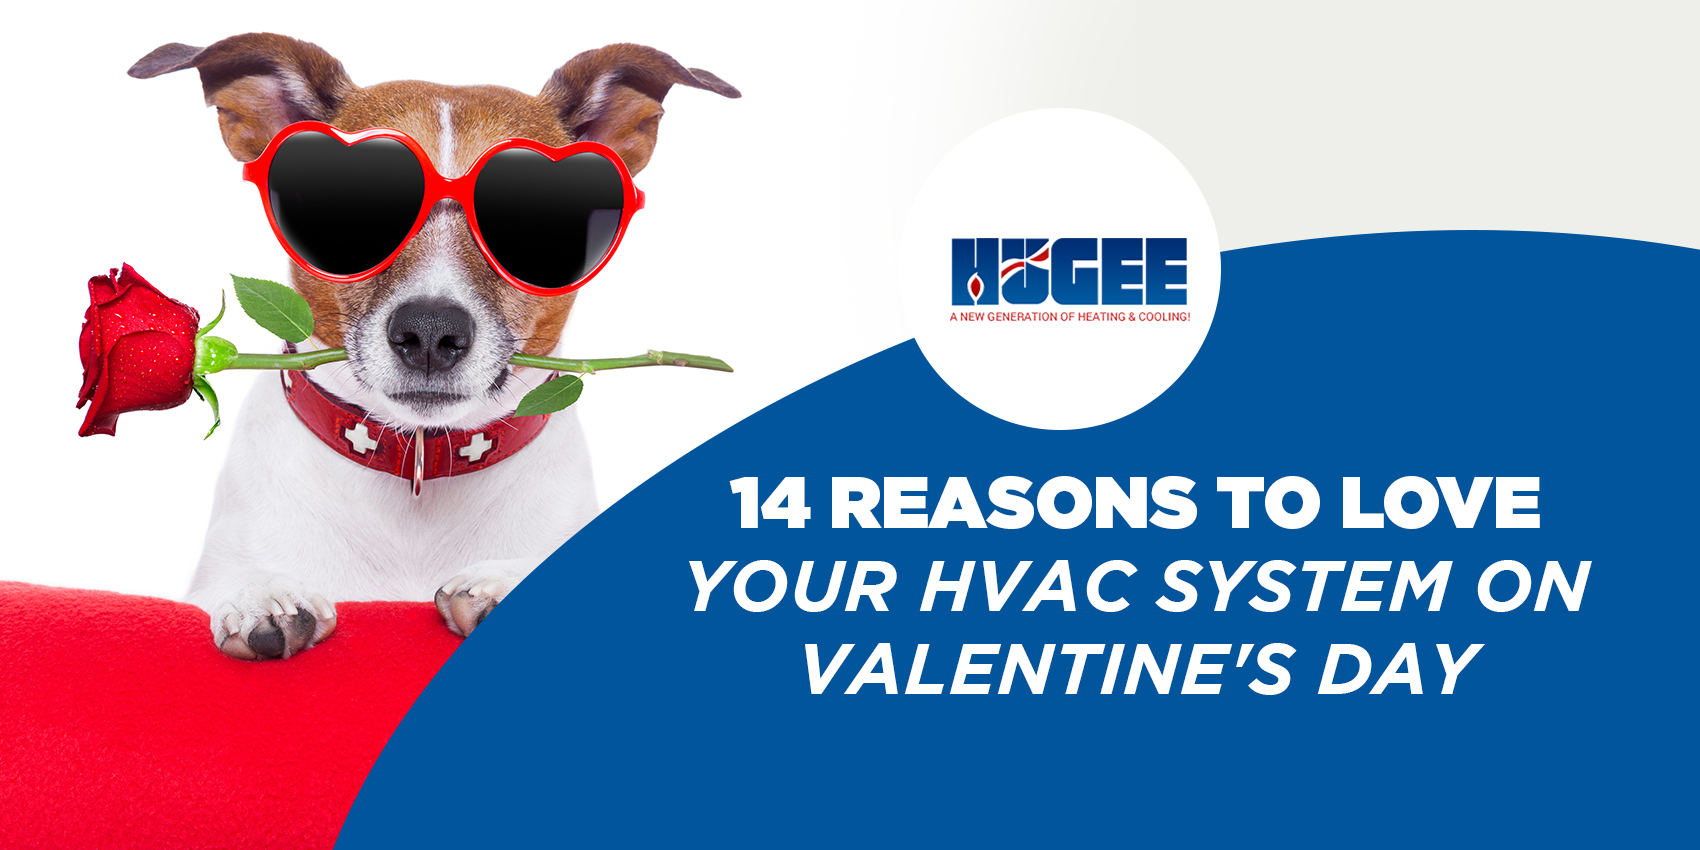 14 Reasons to Love Your HVAC System on Valentine's Day